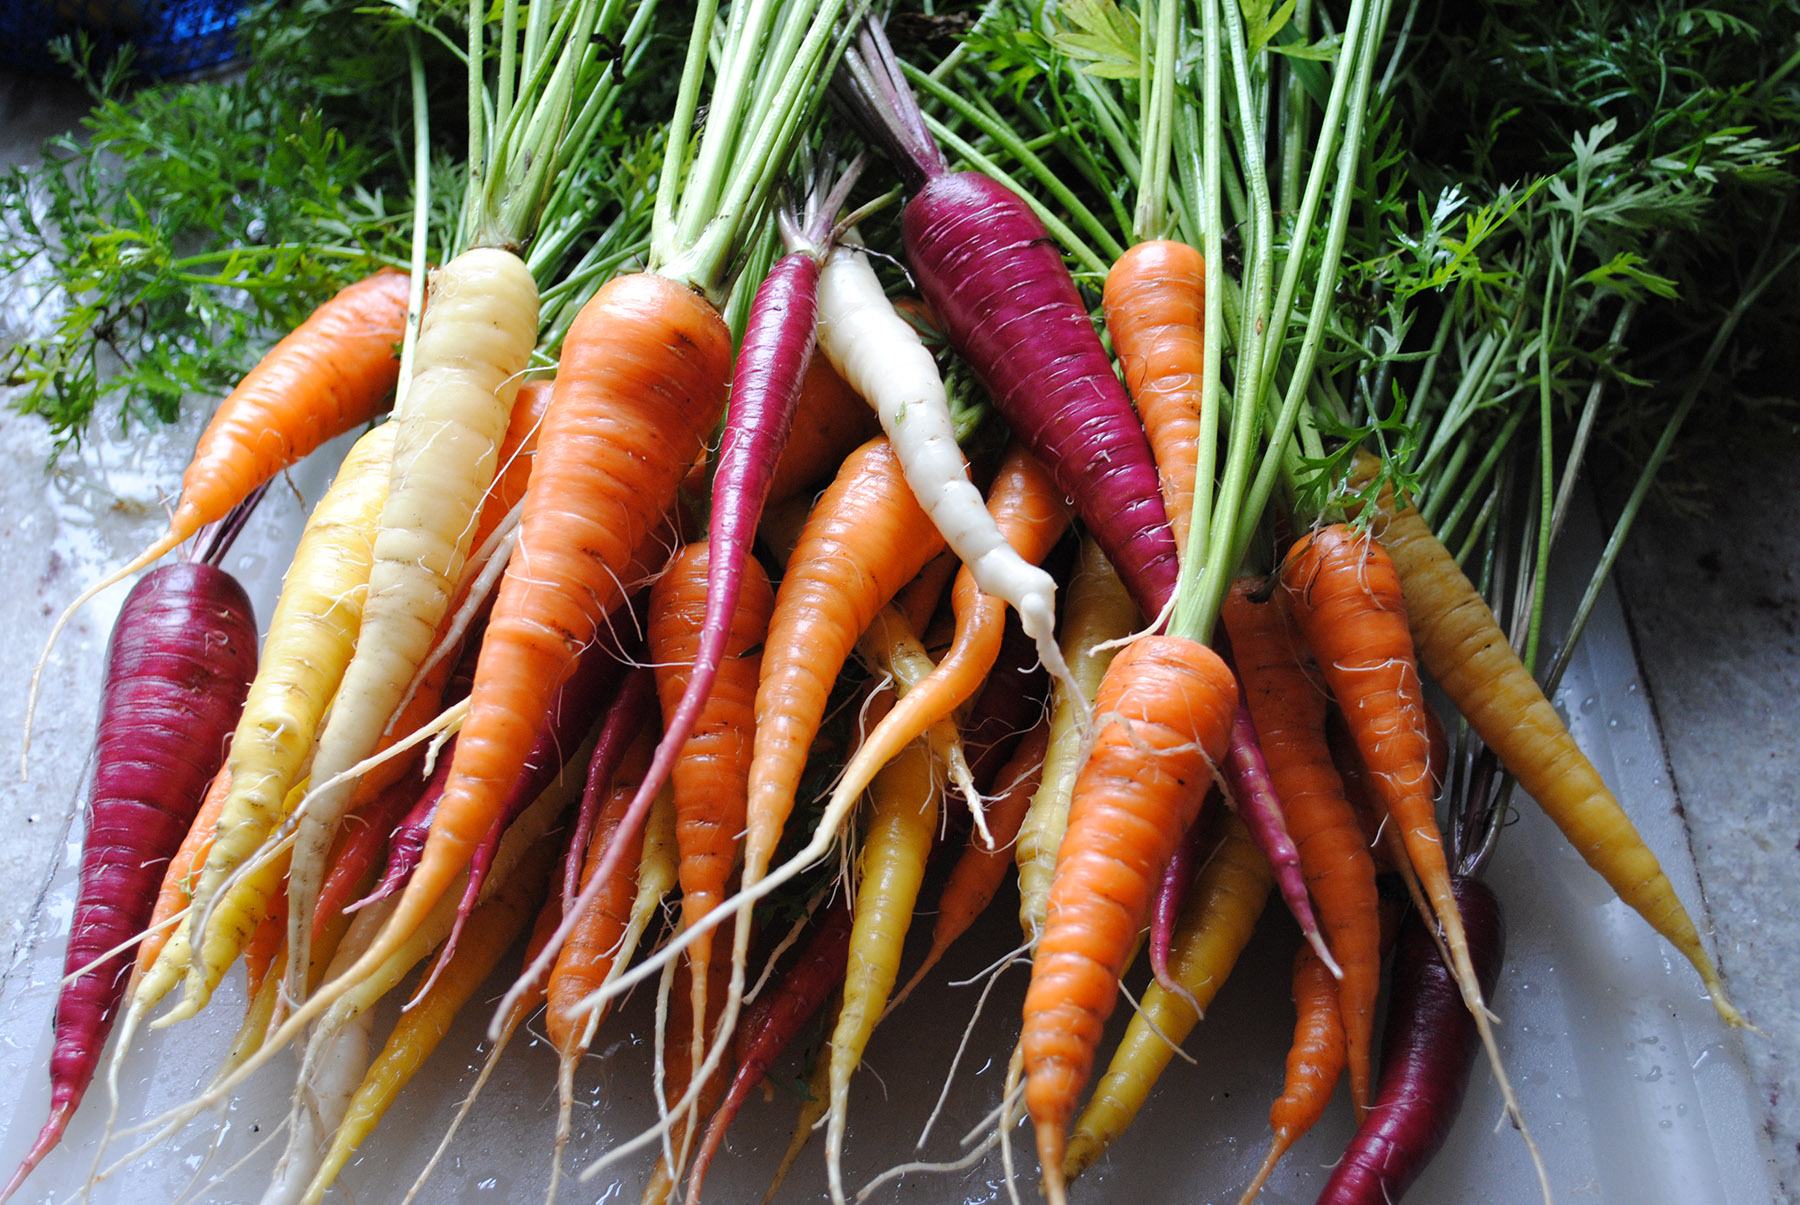 Did you know that even though we tend to think of cookingfoods as ridding it of nutrients, many foods actually become more nourishing after being cooked?Cooking actually increases betacarotene bioavailability of carrots!